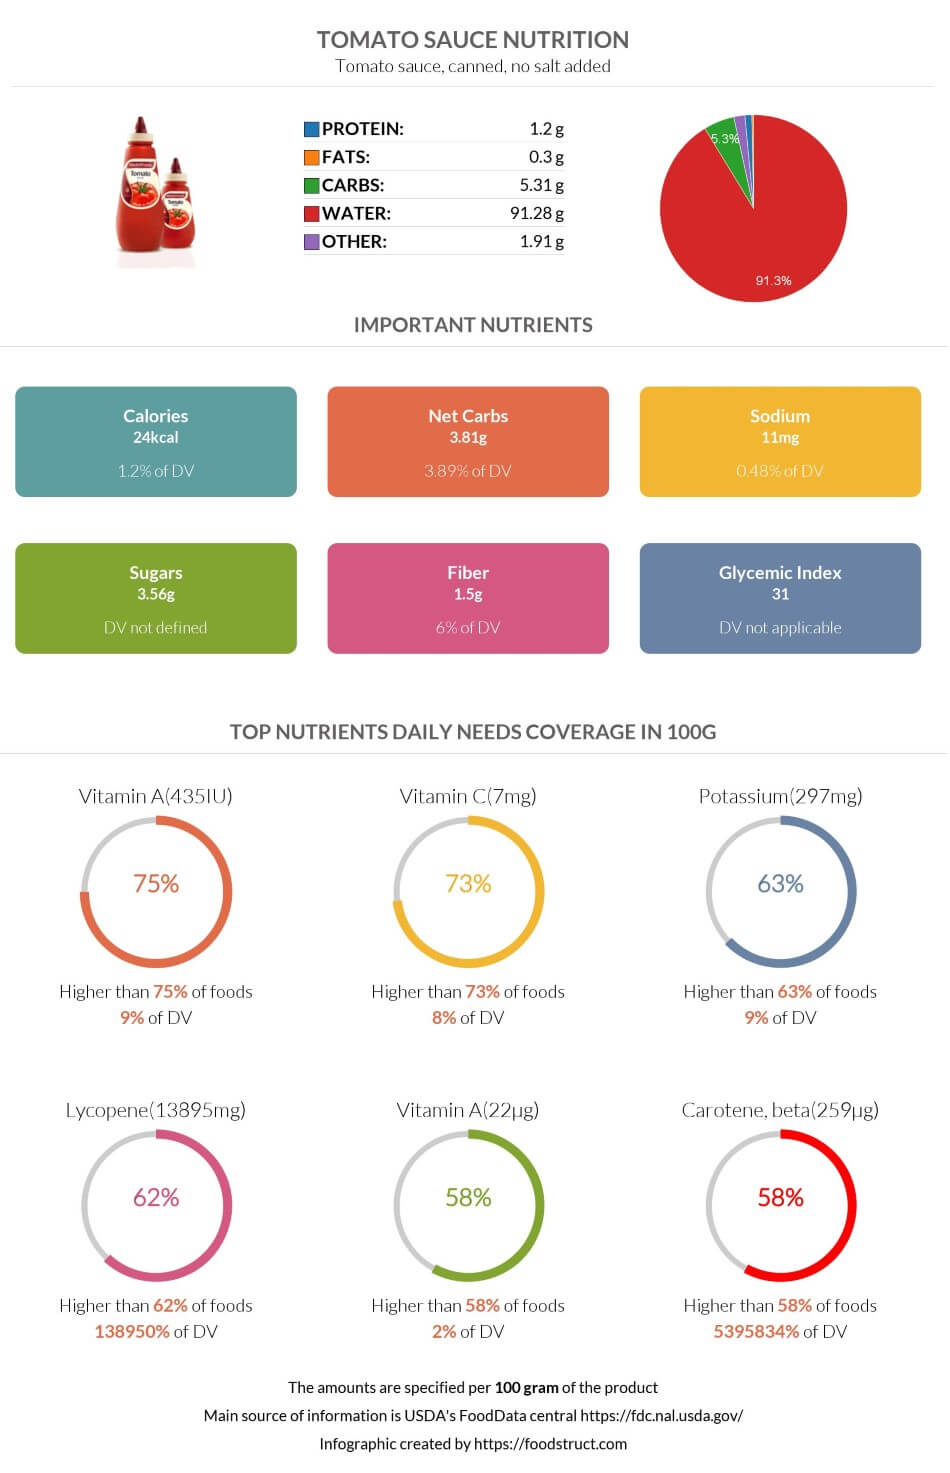 Tomato sauce nutrition infographic